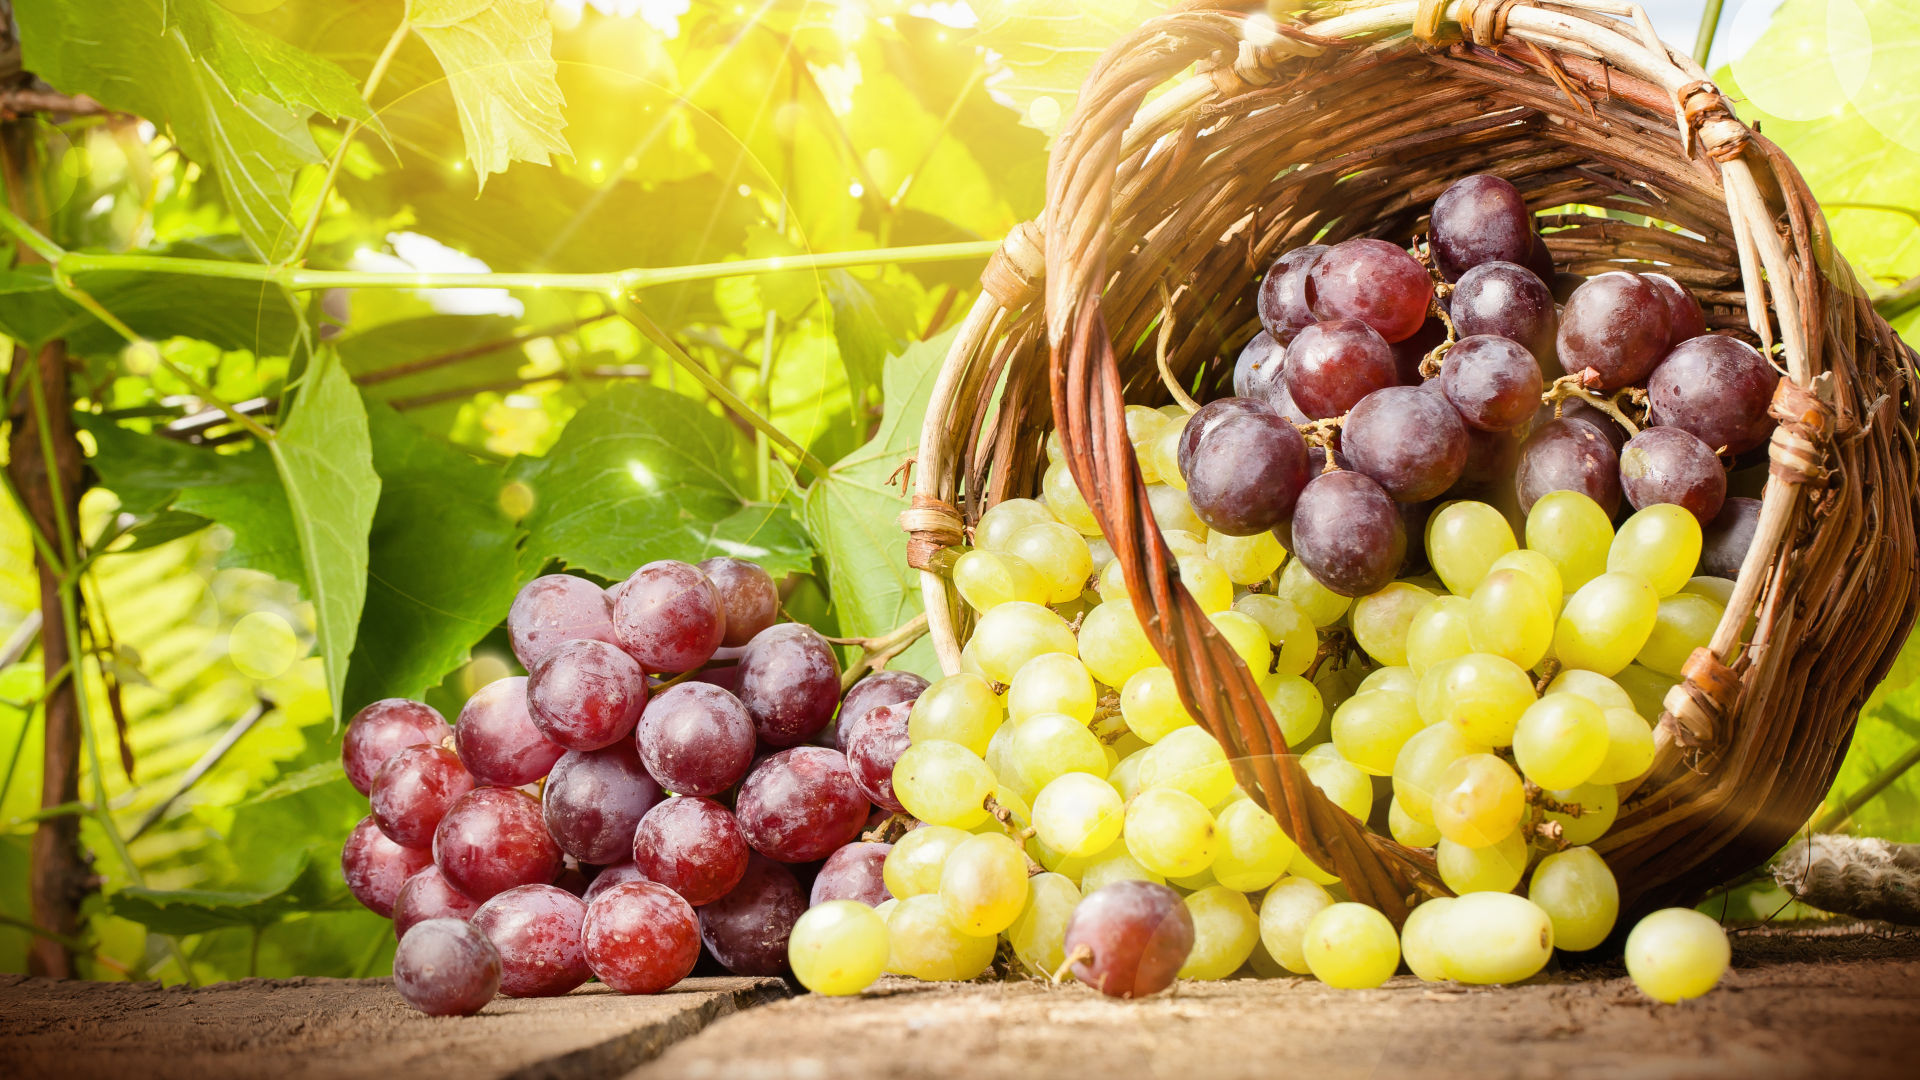 Grapes: a mix of health and beauty